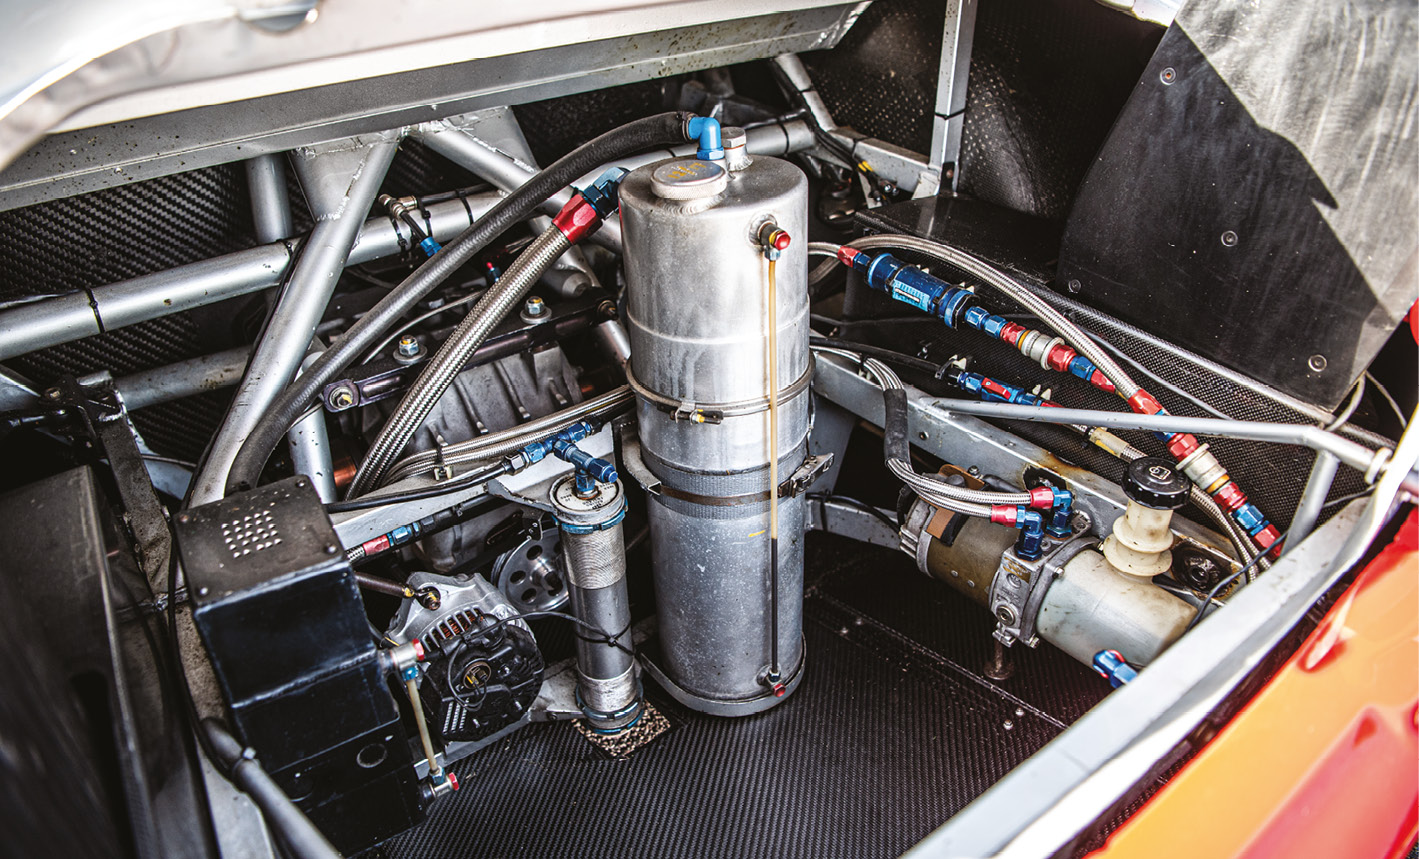 To aid weight, many ancillaries were moved to the boot area, where the gearbox and differential sit